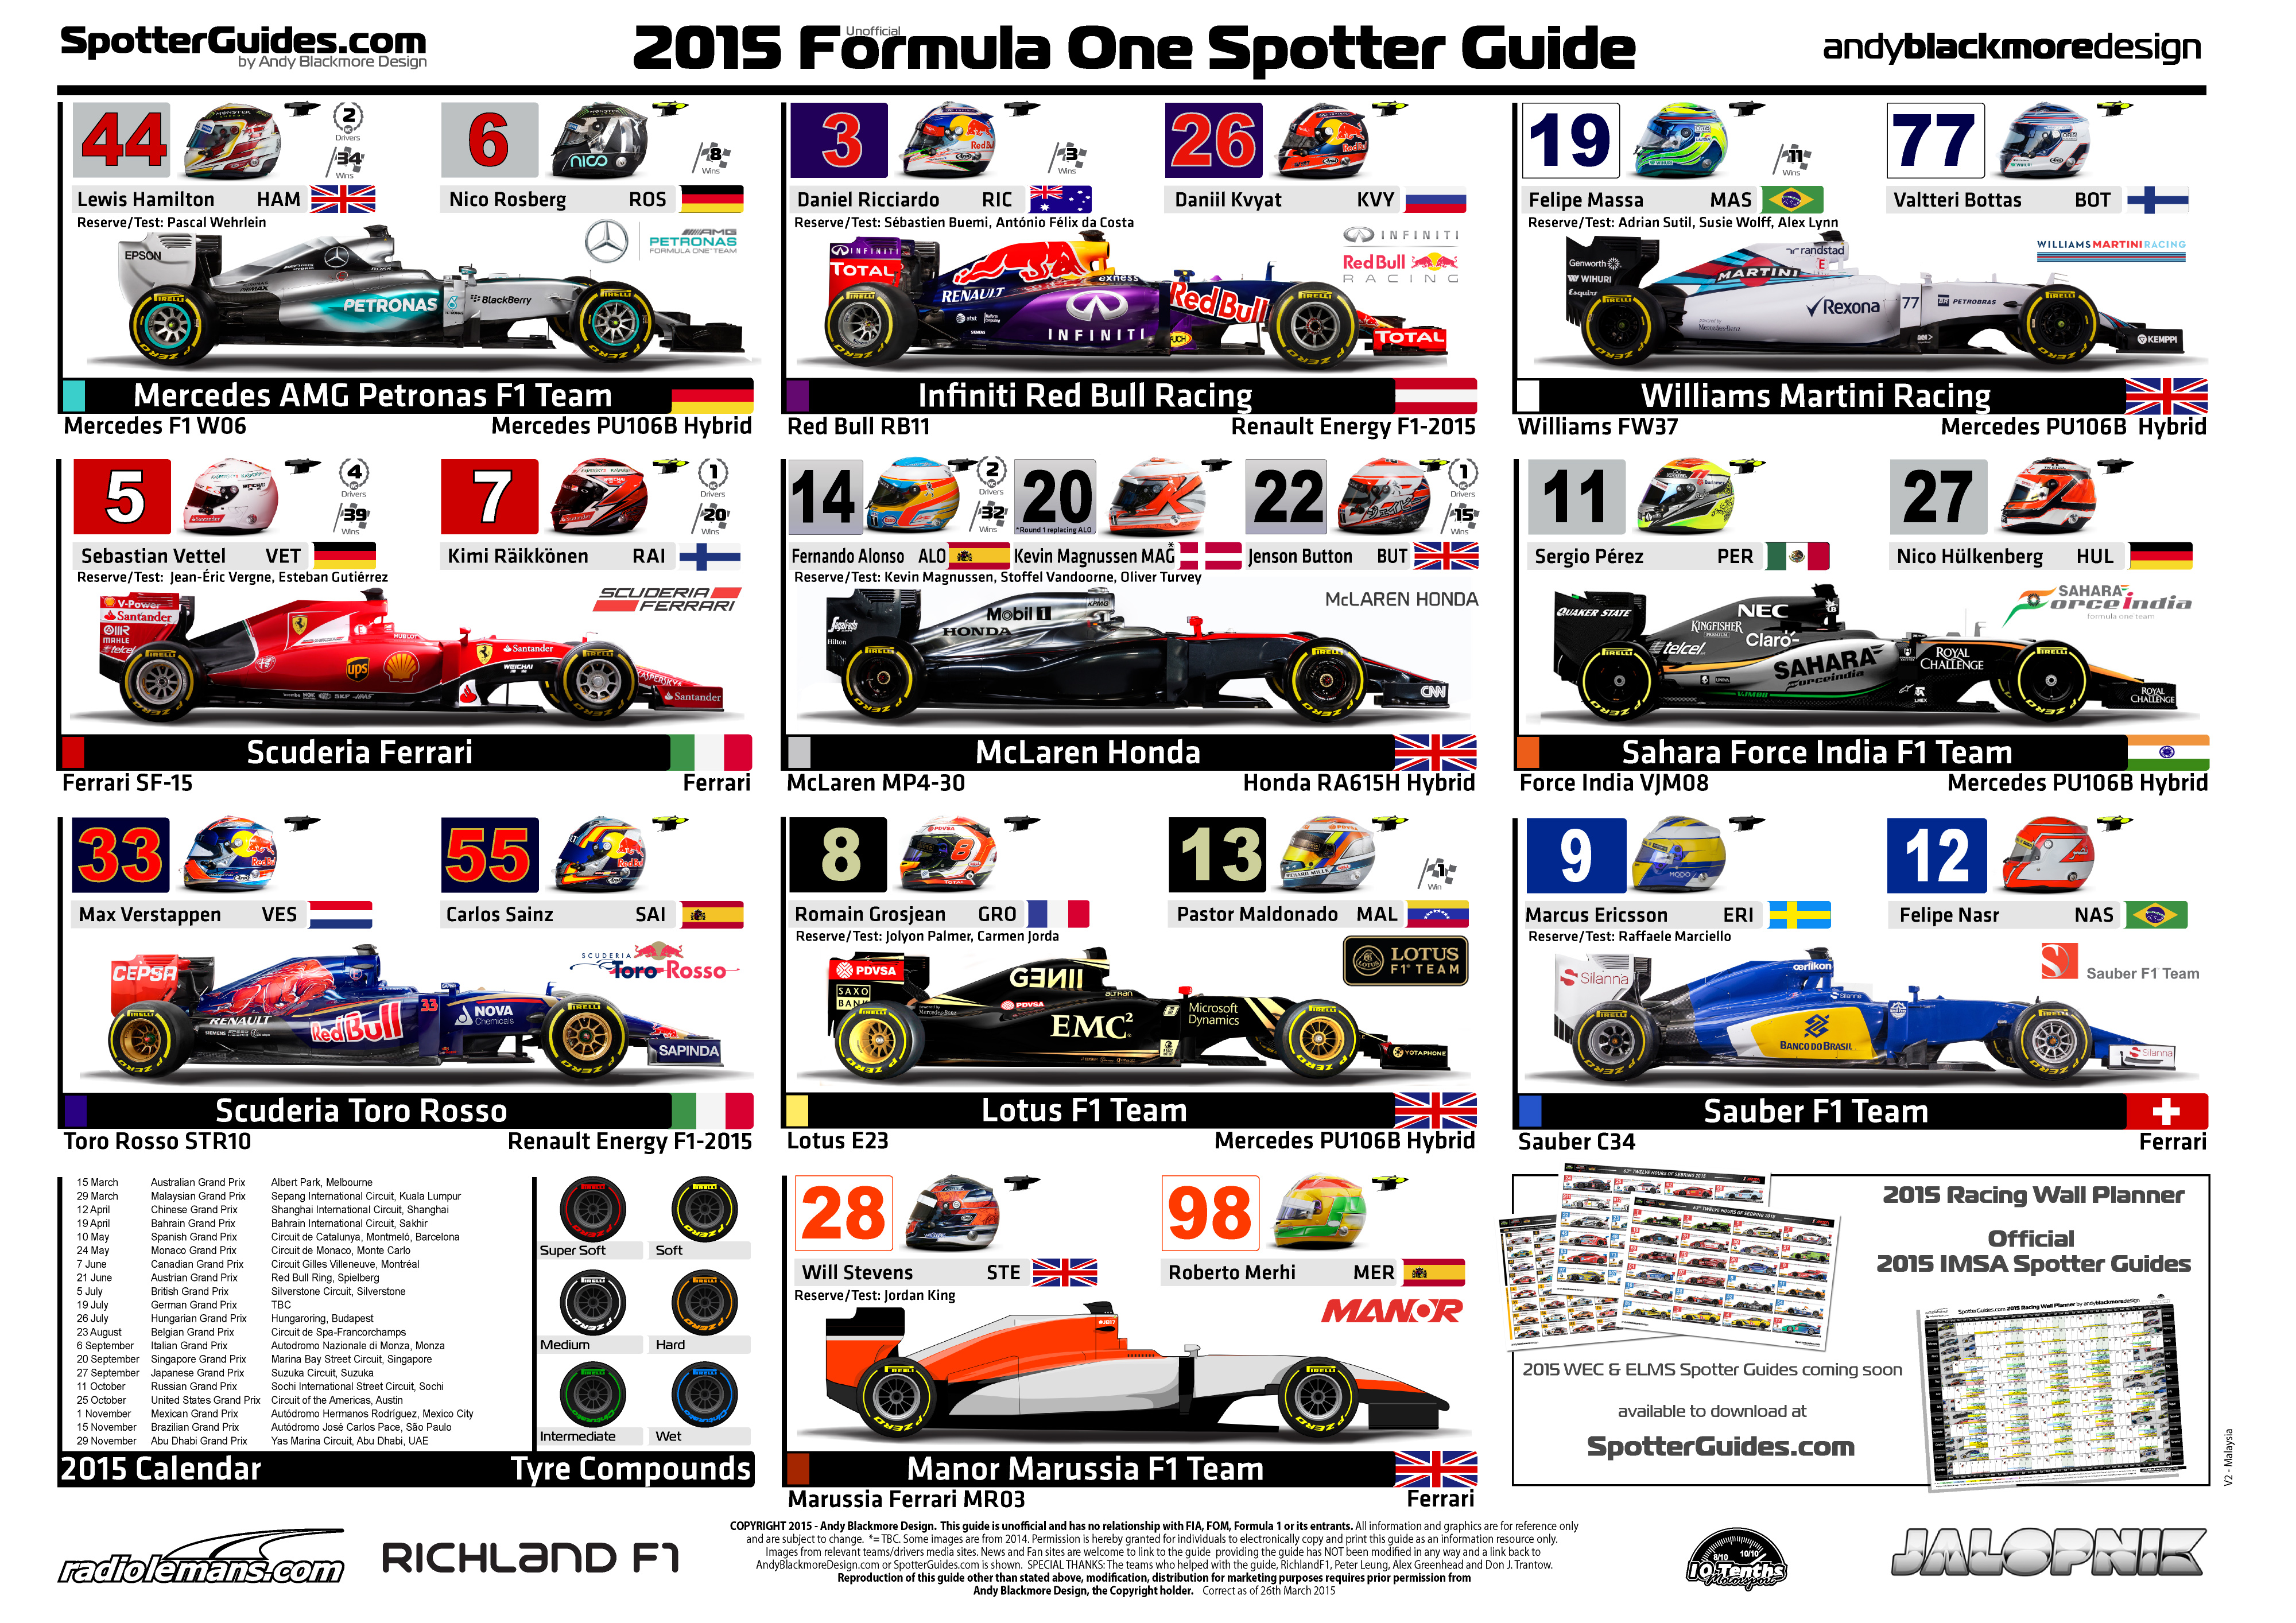 2015 formula one spotter guide spotter guides. Black Bedroom Furniture Sets. Home Design Ideas